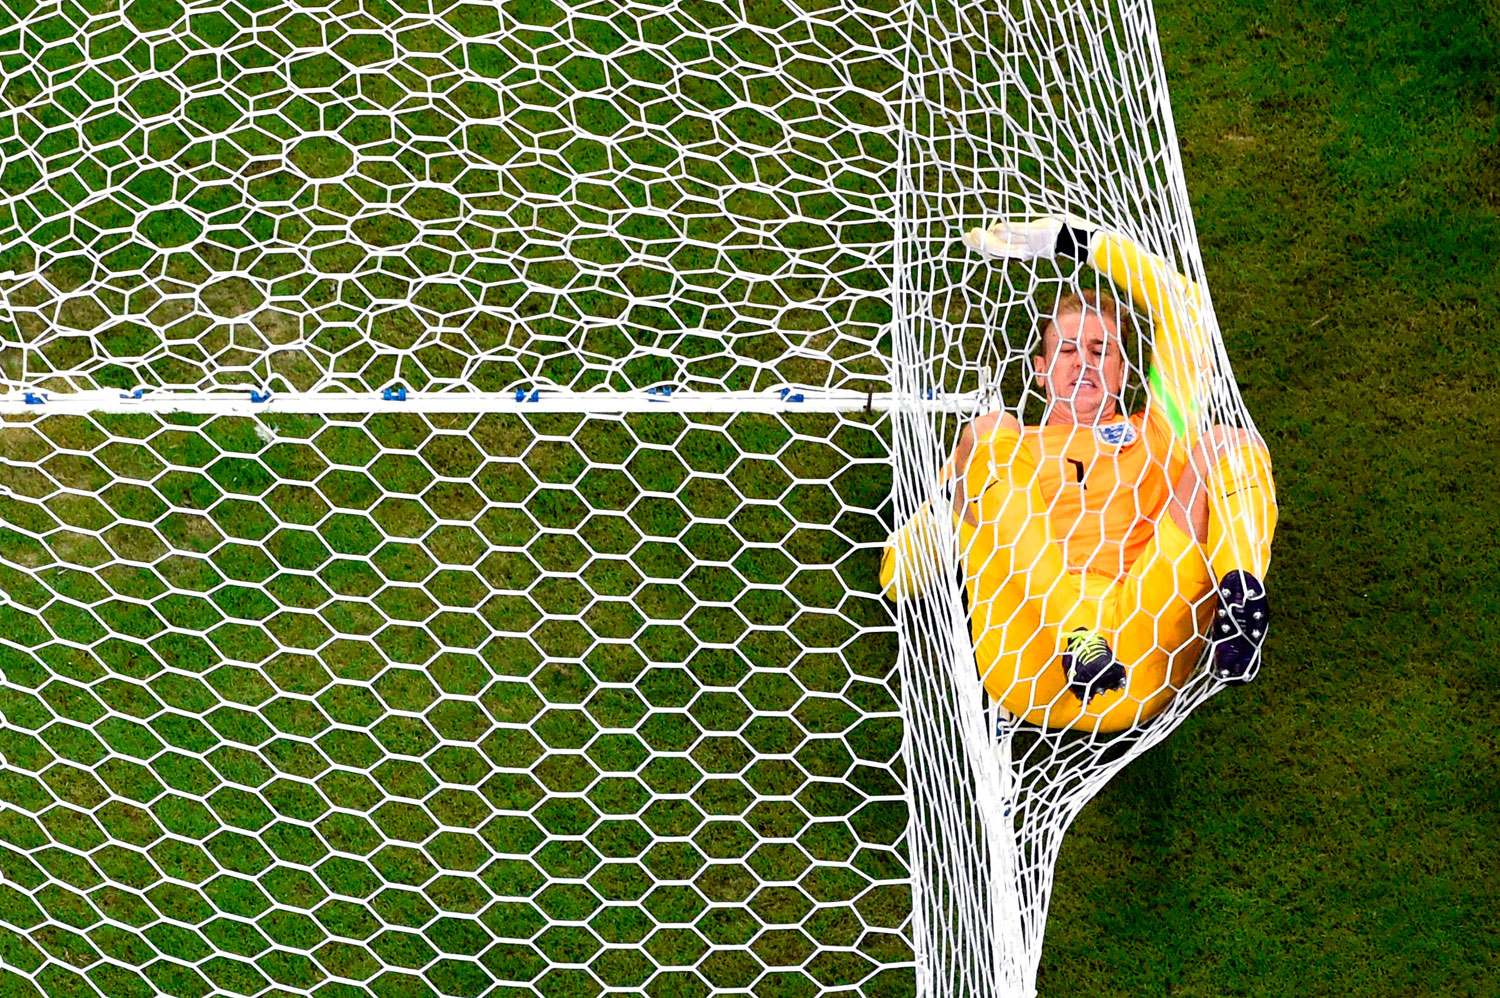 Joe Hart of England lands in the net after allowing Italy's second goal to Mario Balotelli of Italy during the match between England and Italy at Arena Amazonia on June 14, 2014 in Manaus, Brazil.